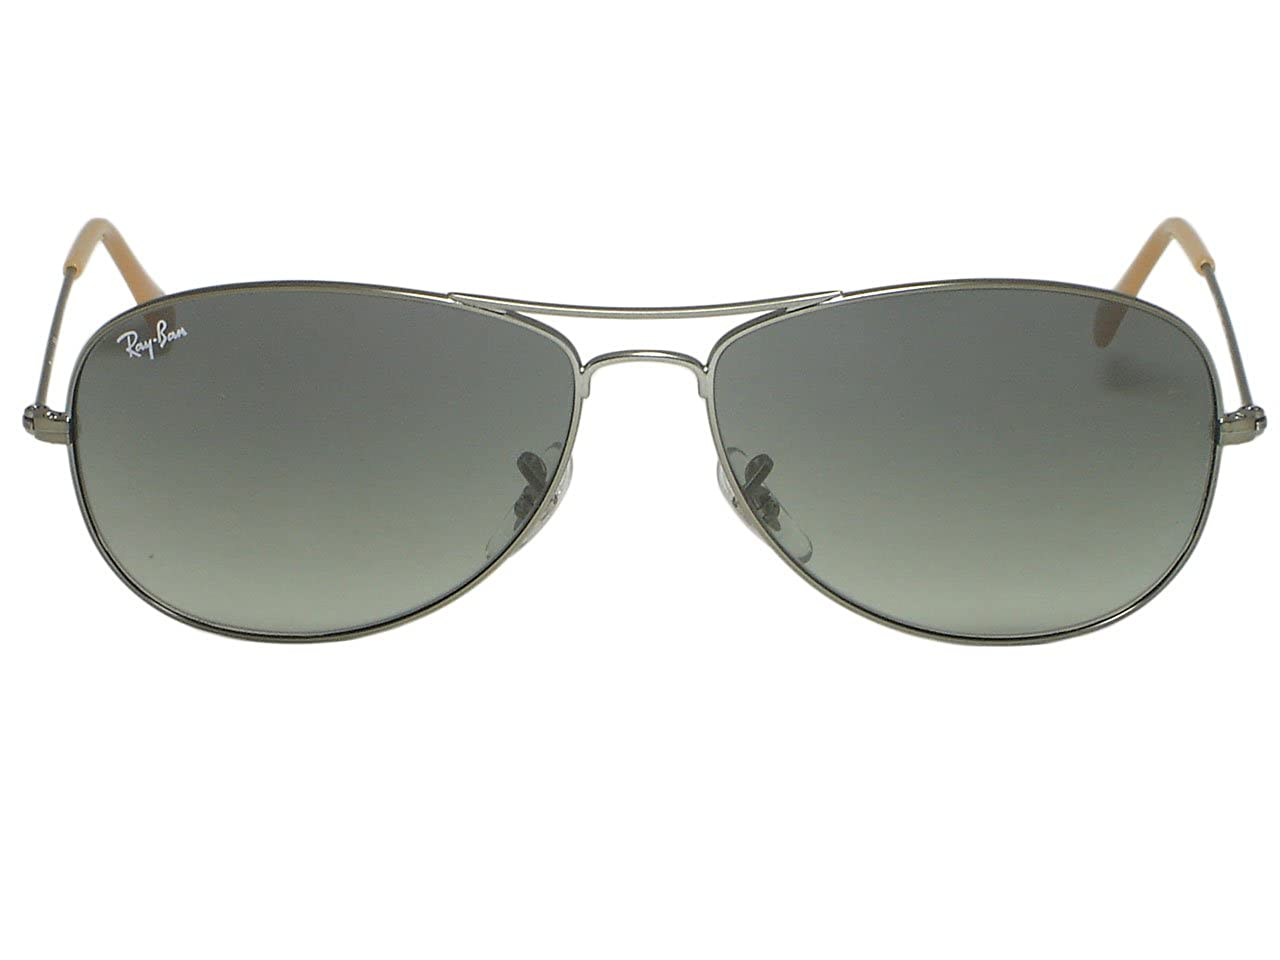 b8257603e4 Amazon.com  Ray Ban RB3362 Cockpit 004 Gunmetal Sunglasses 56mm  Clothing